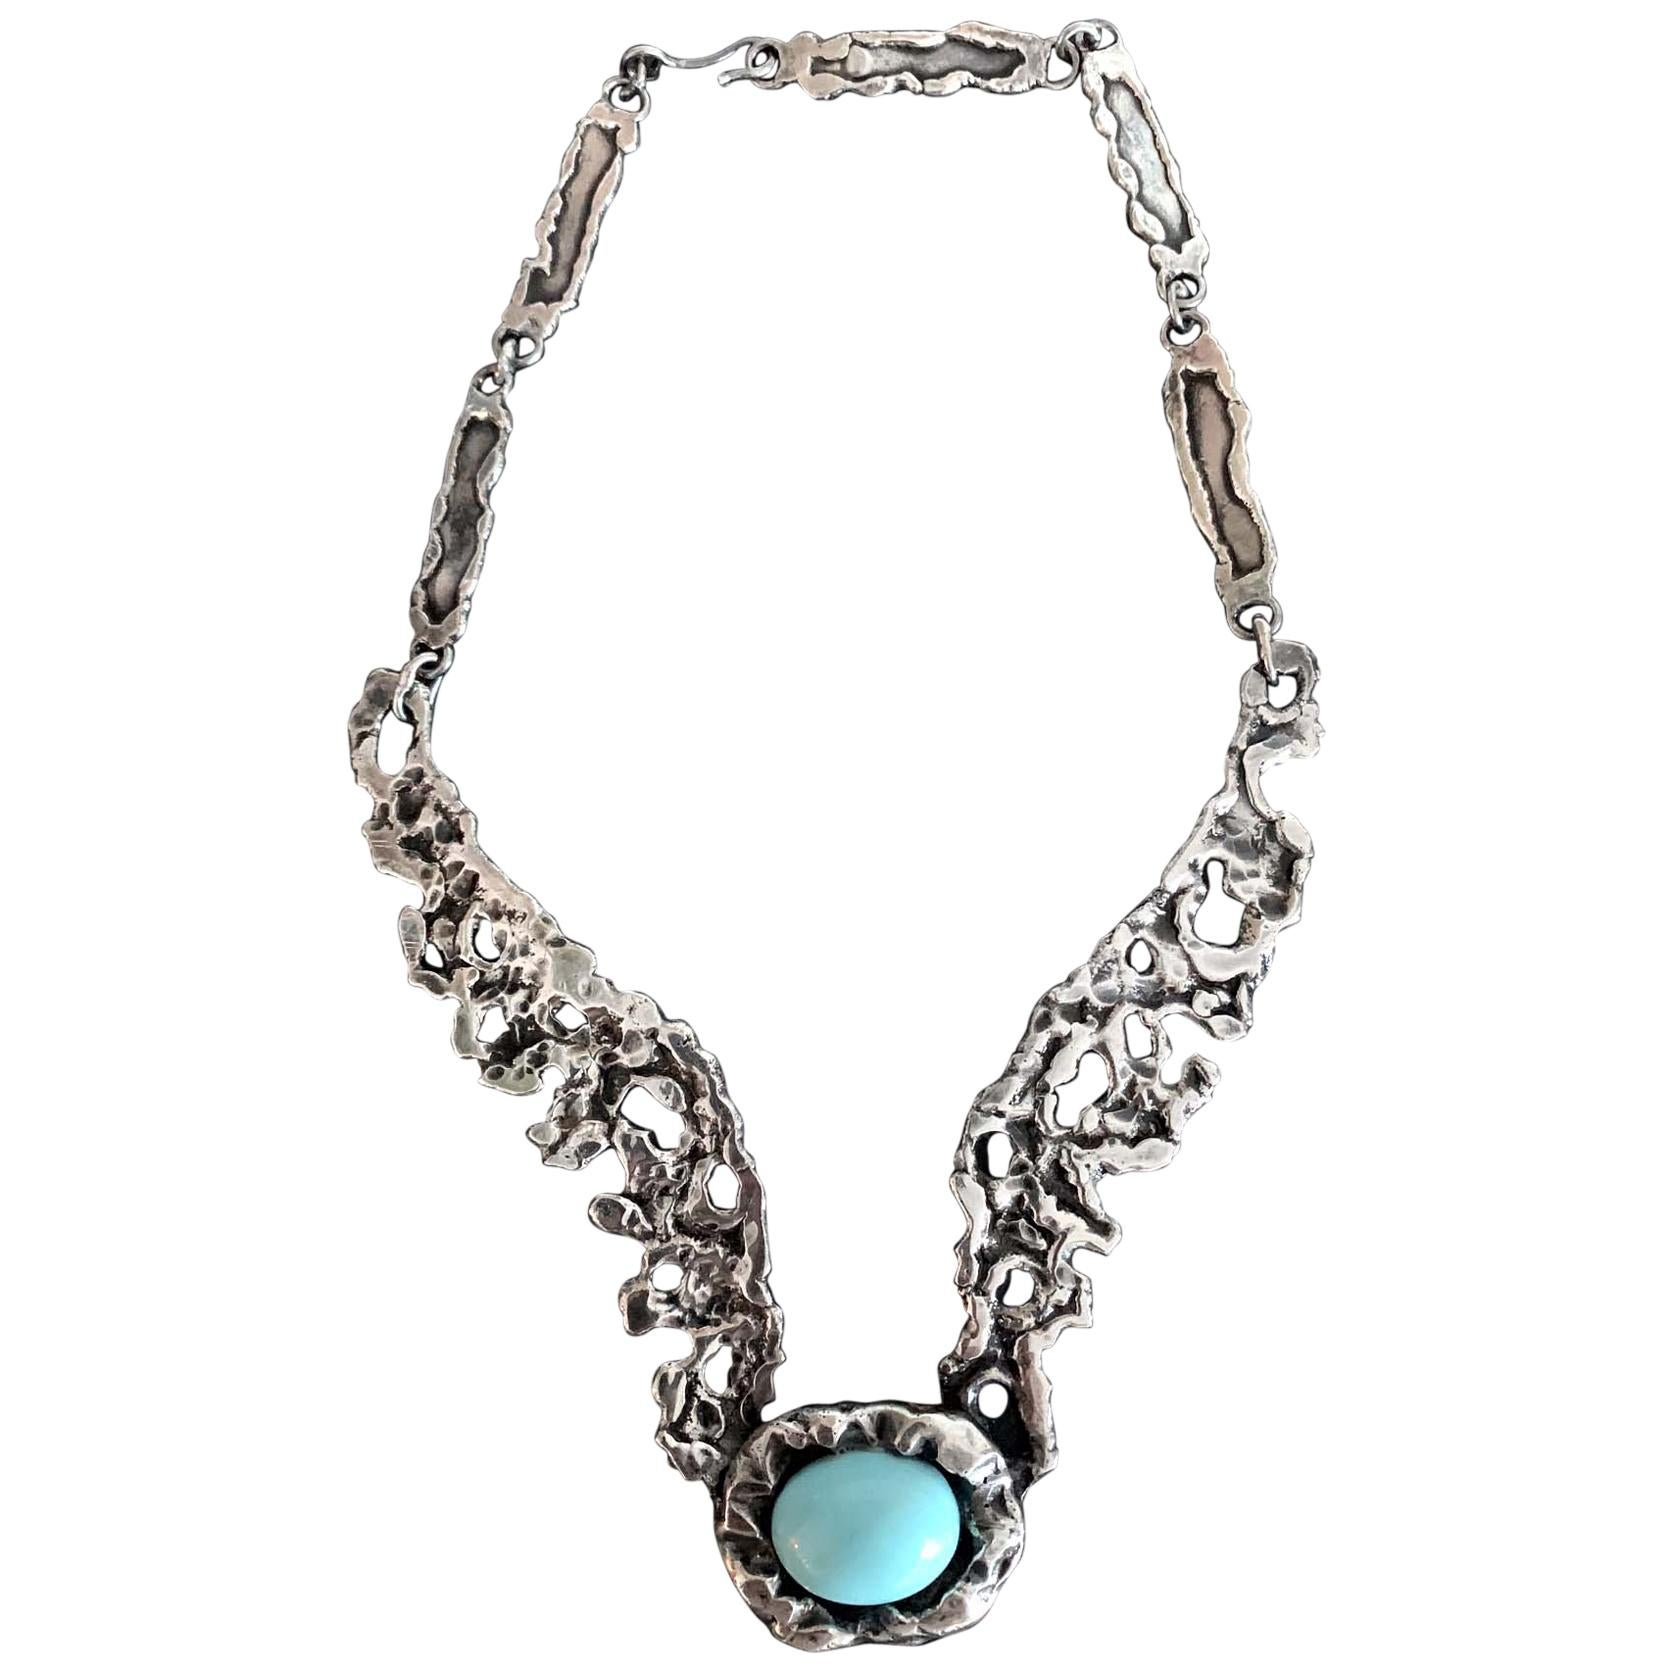 Mexican Modernist Sterling Silver Necklace by Tane Orfebres